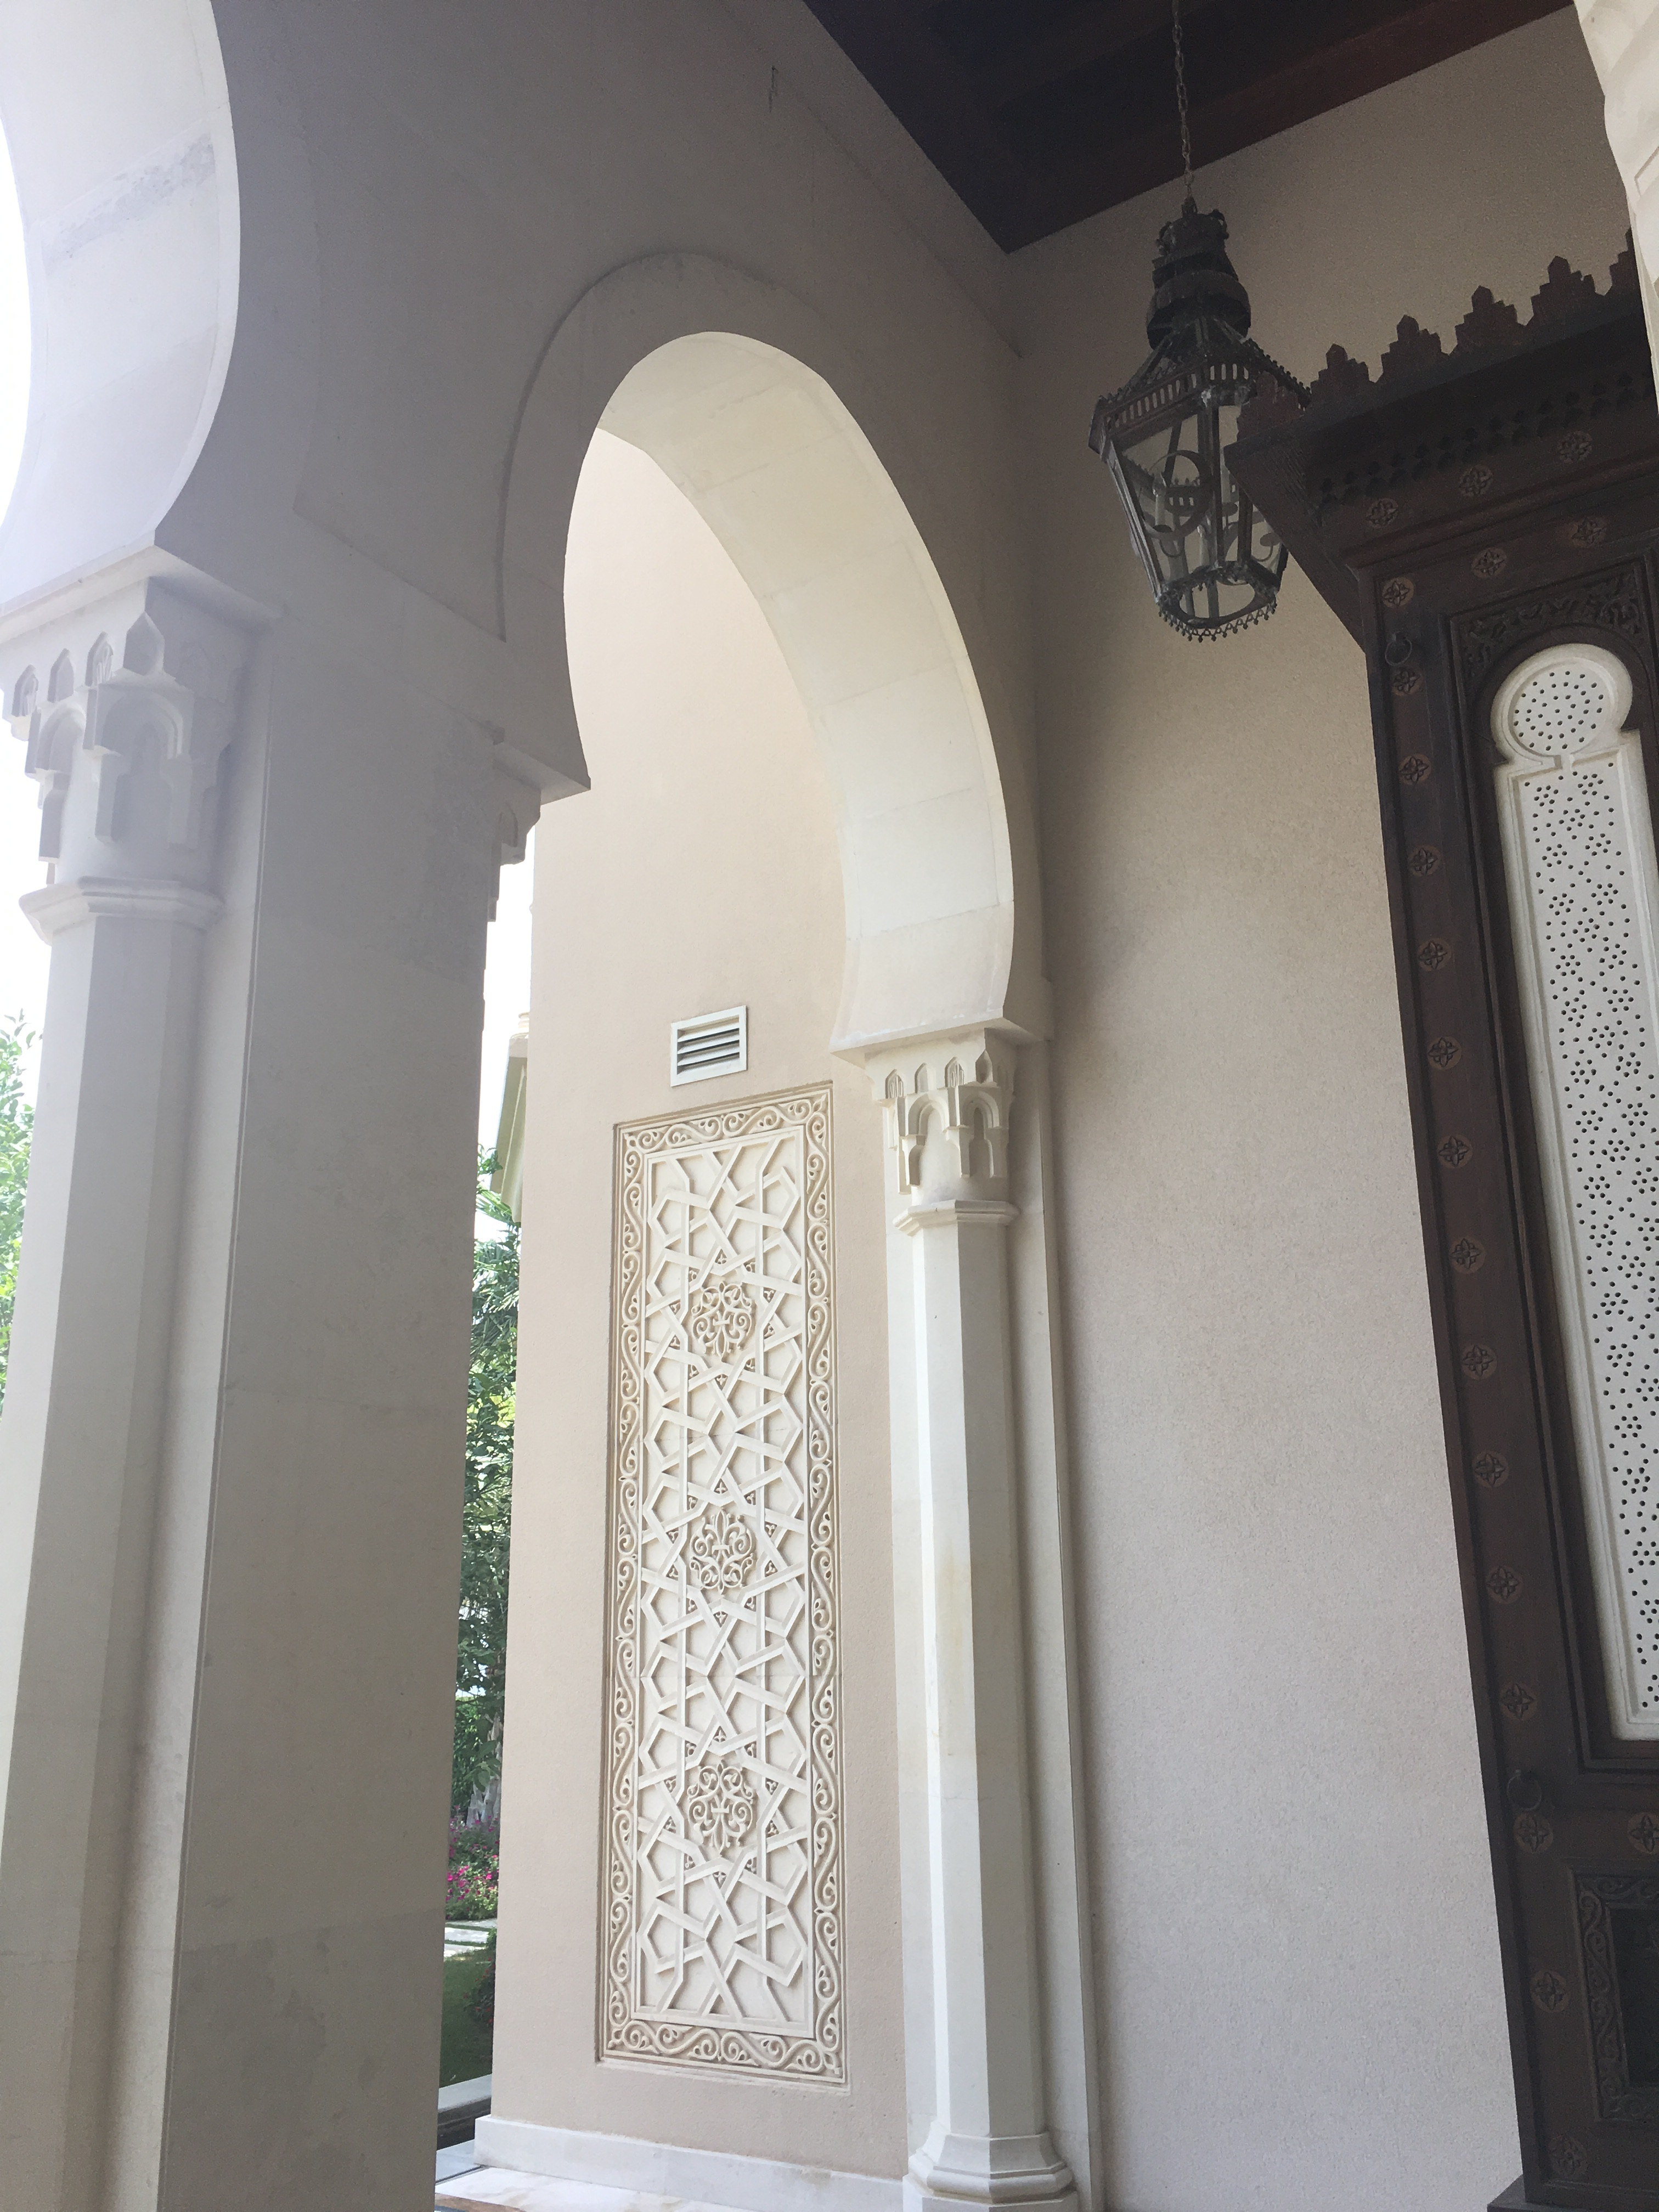 Monique Lhuillier travel diary: Beautiful archways